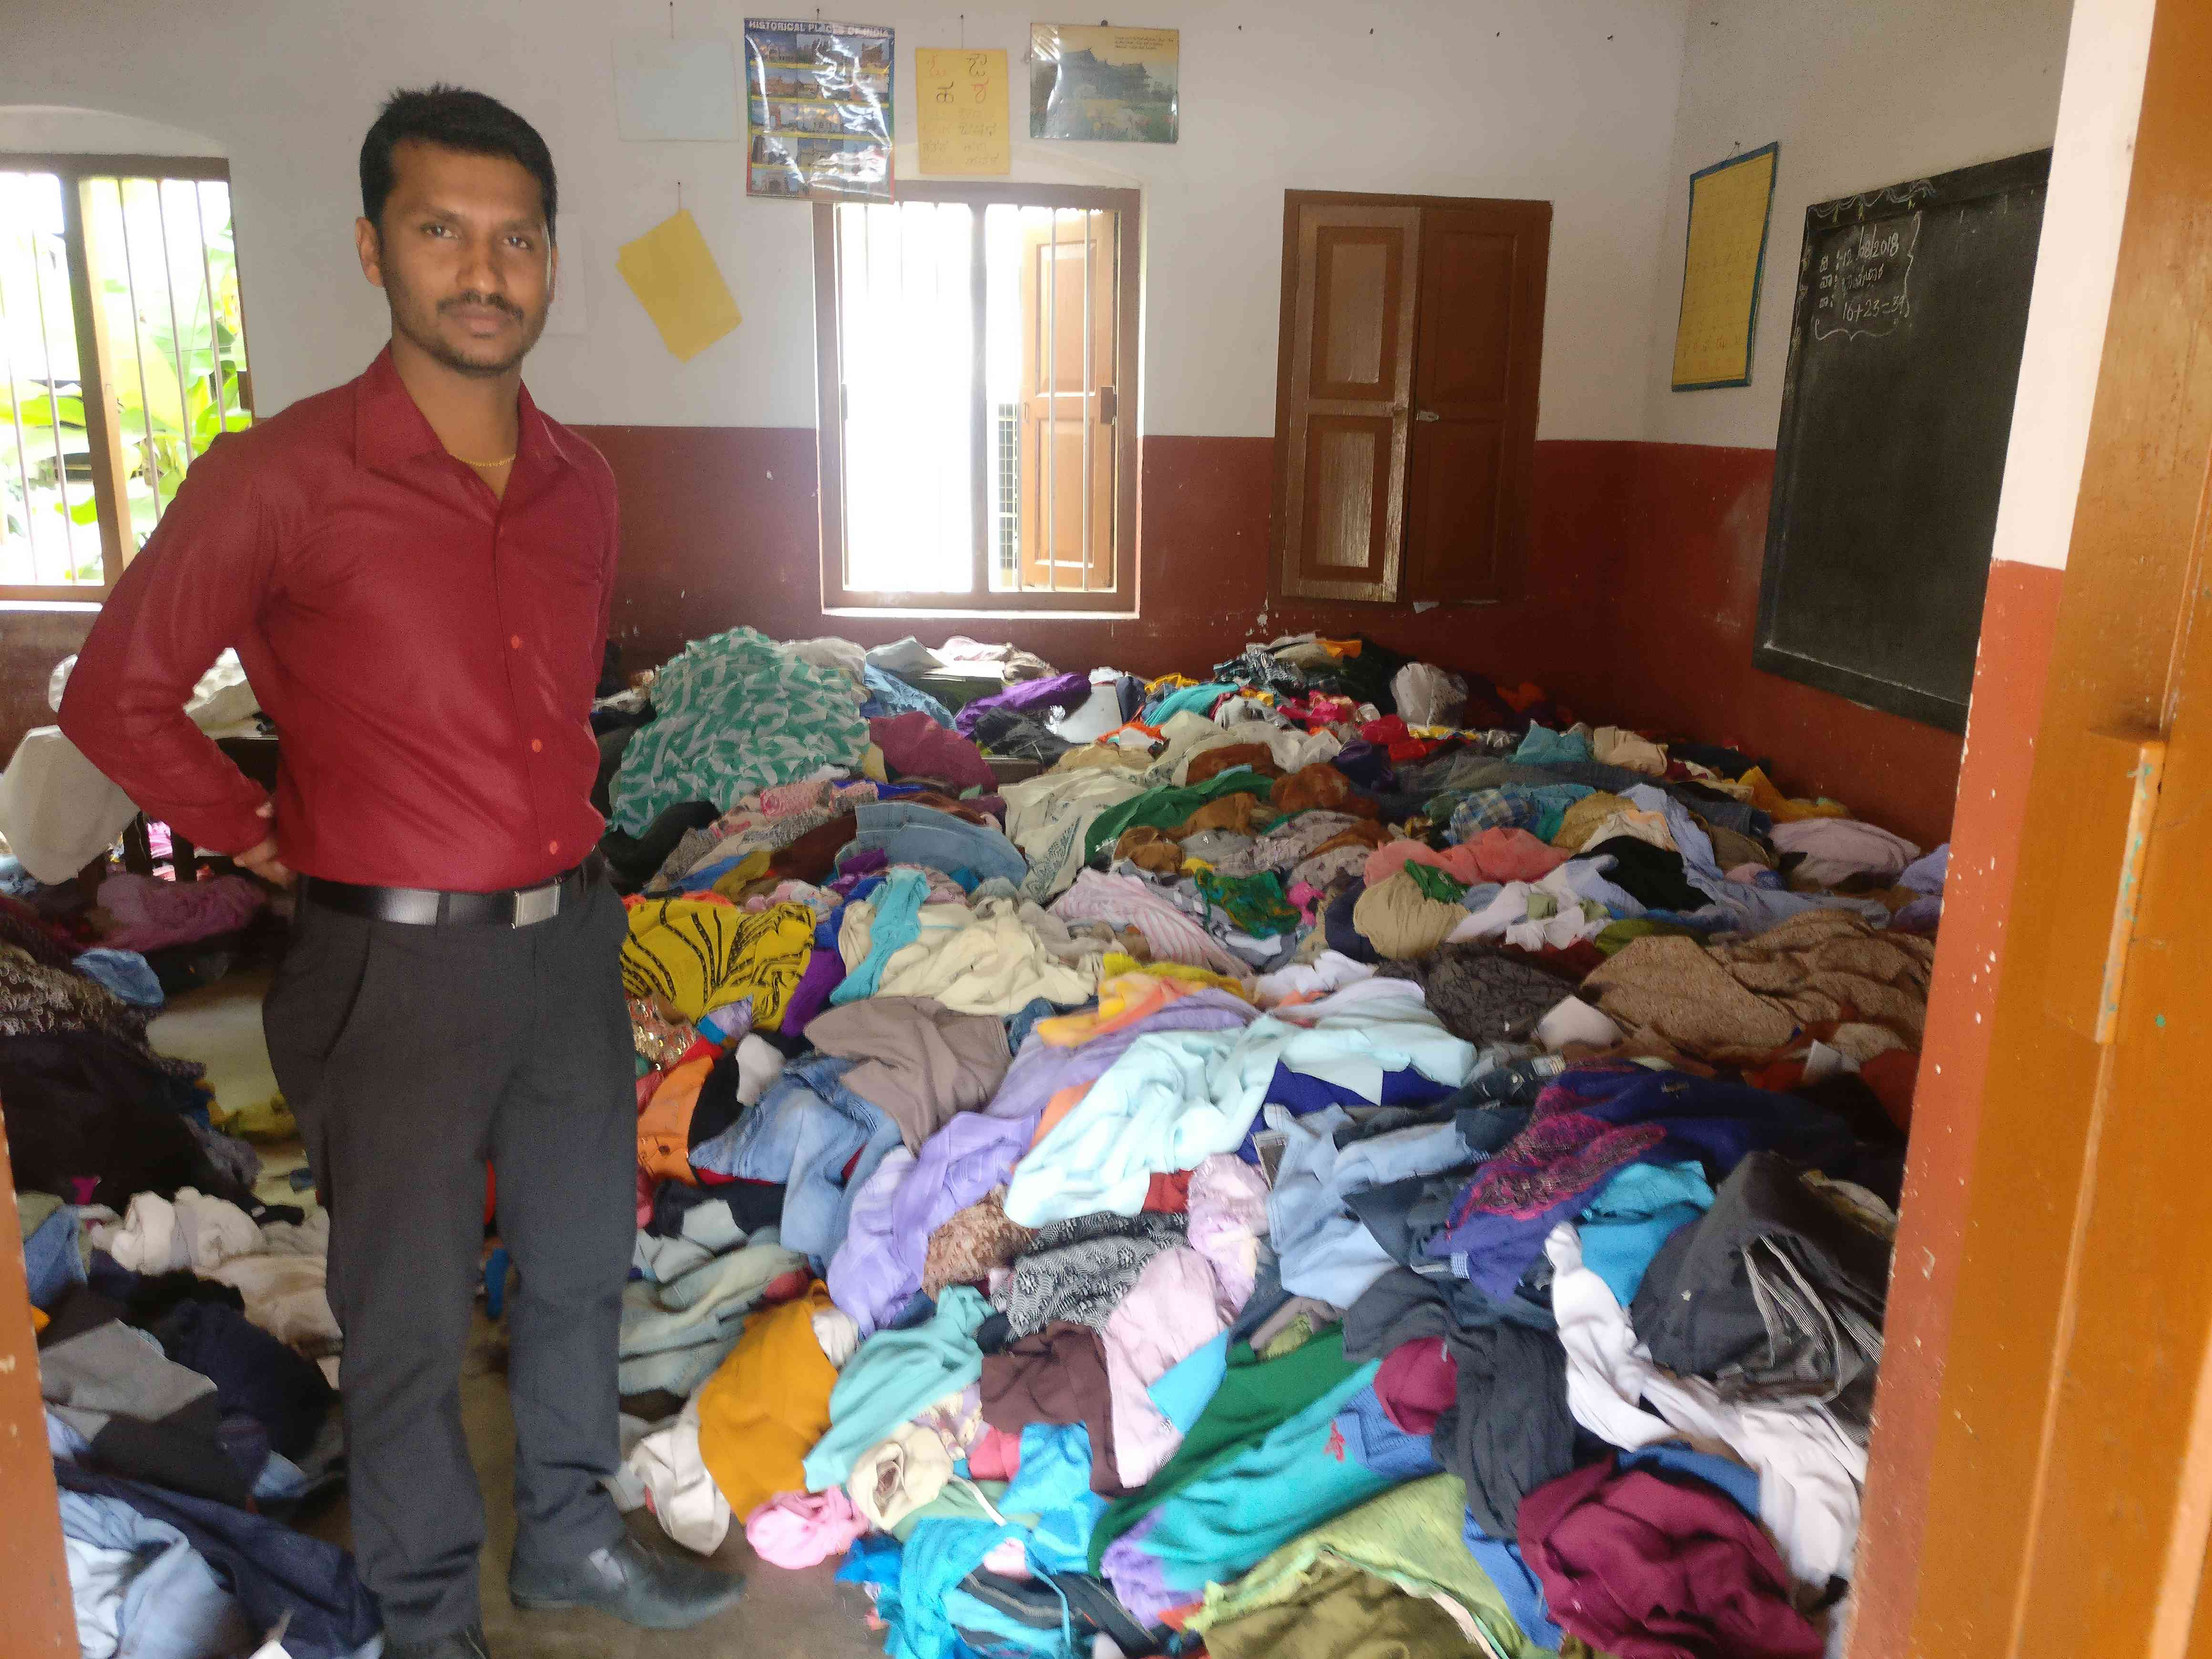 Harish stands in a room full of unusable clothes donated to flood victims in Kodagu. (Credit: Nayantara Narayanan)